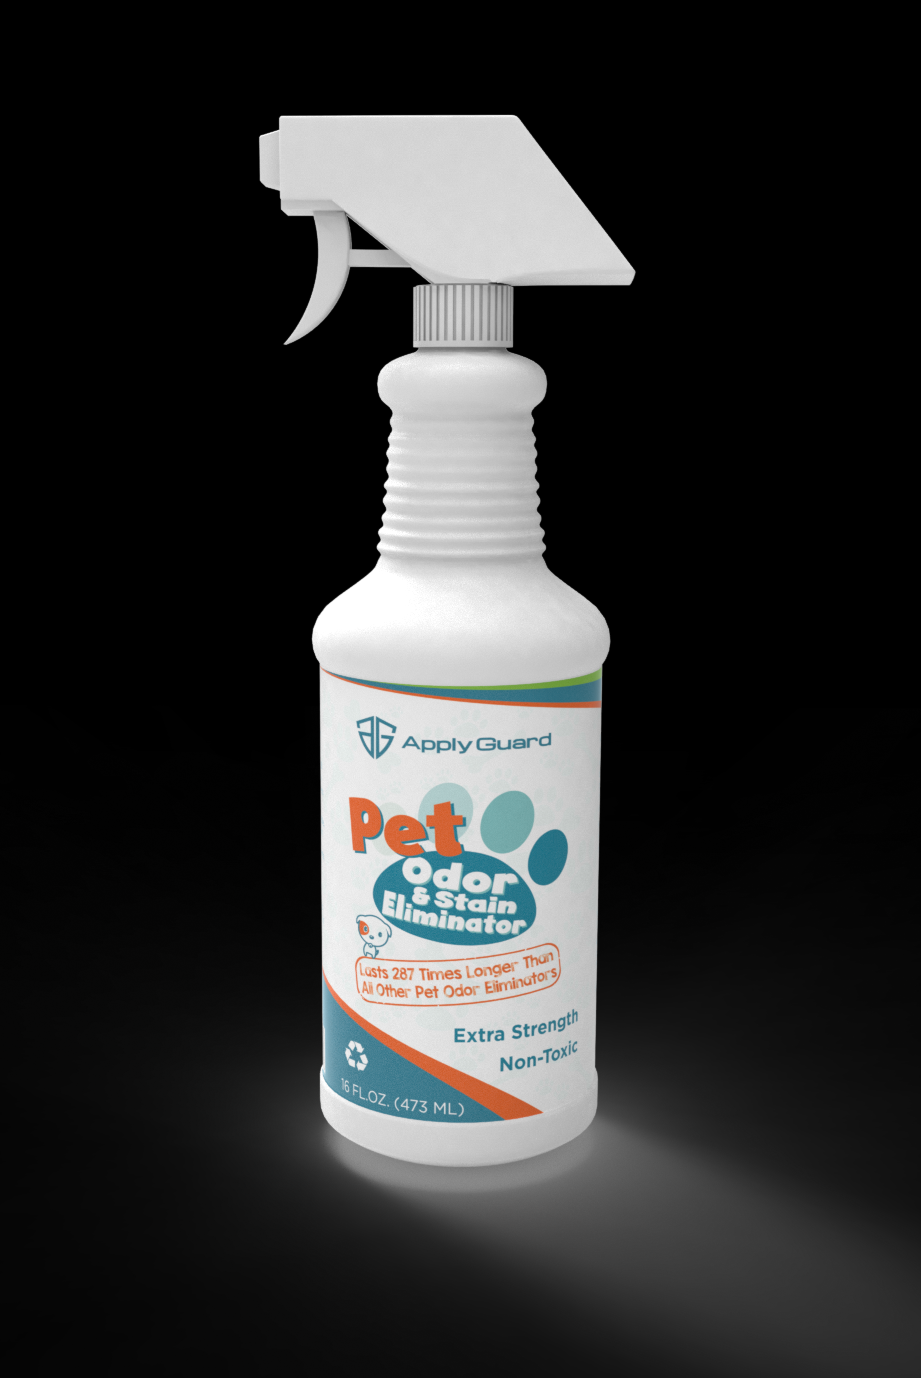 Apply-guard-pet-odor-eliminator